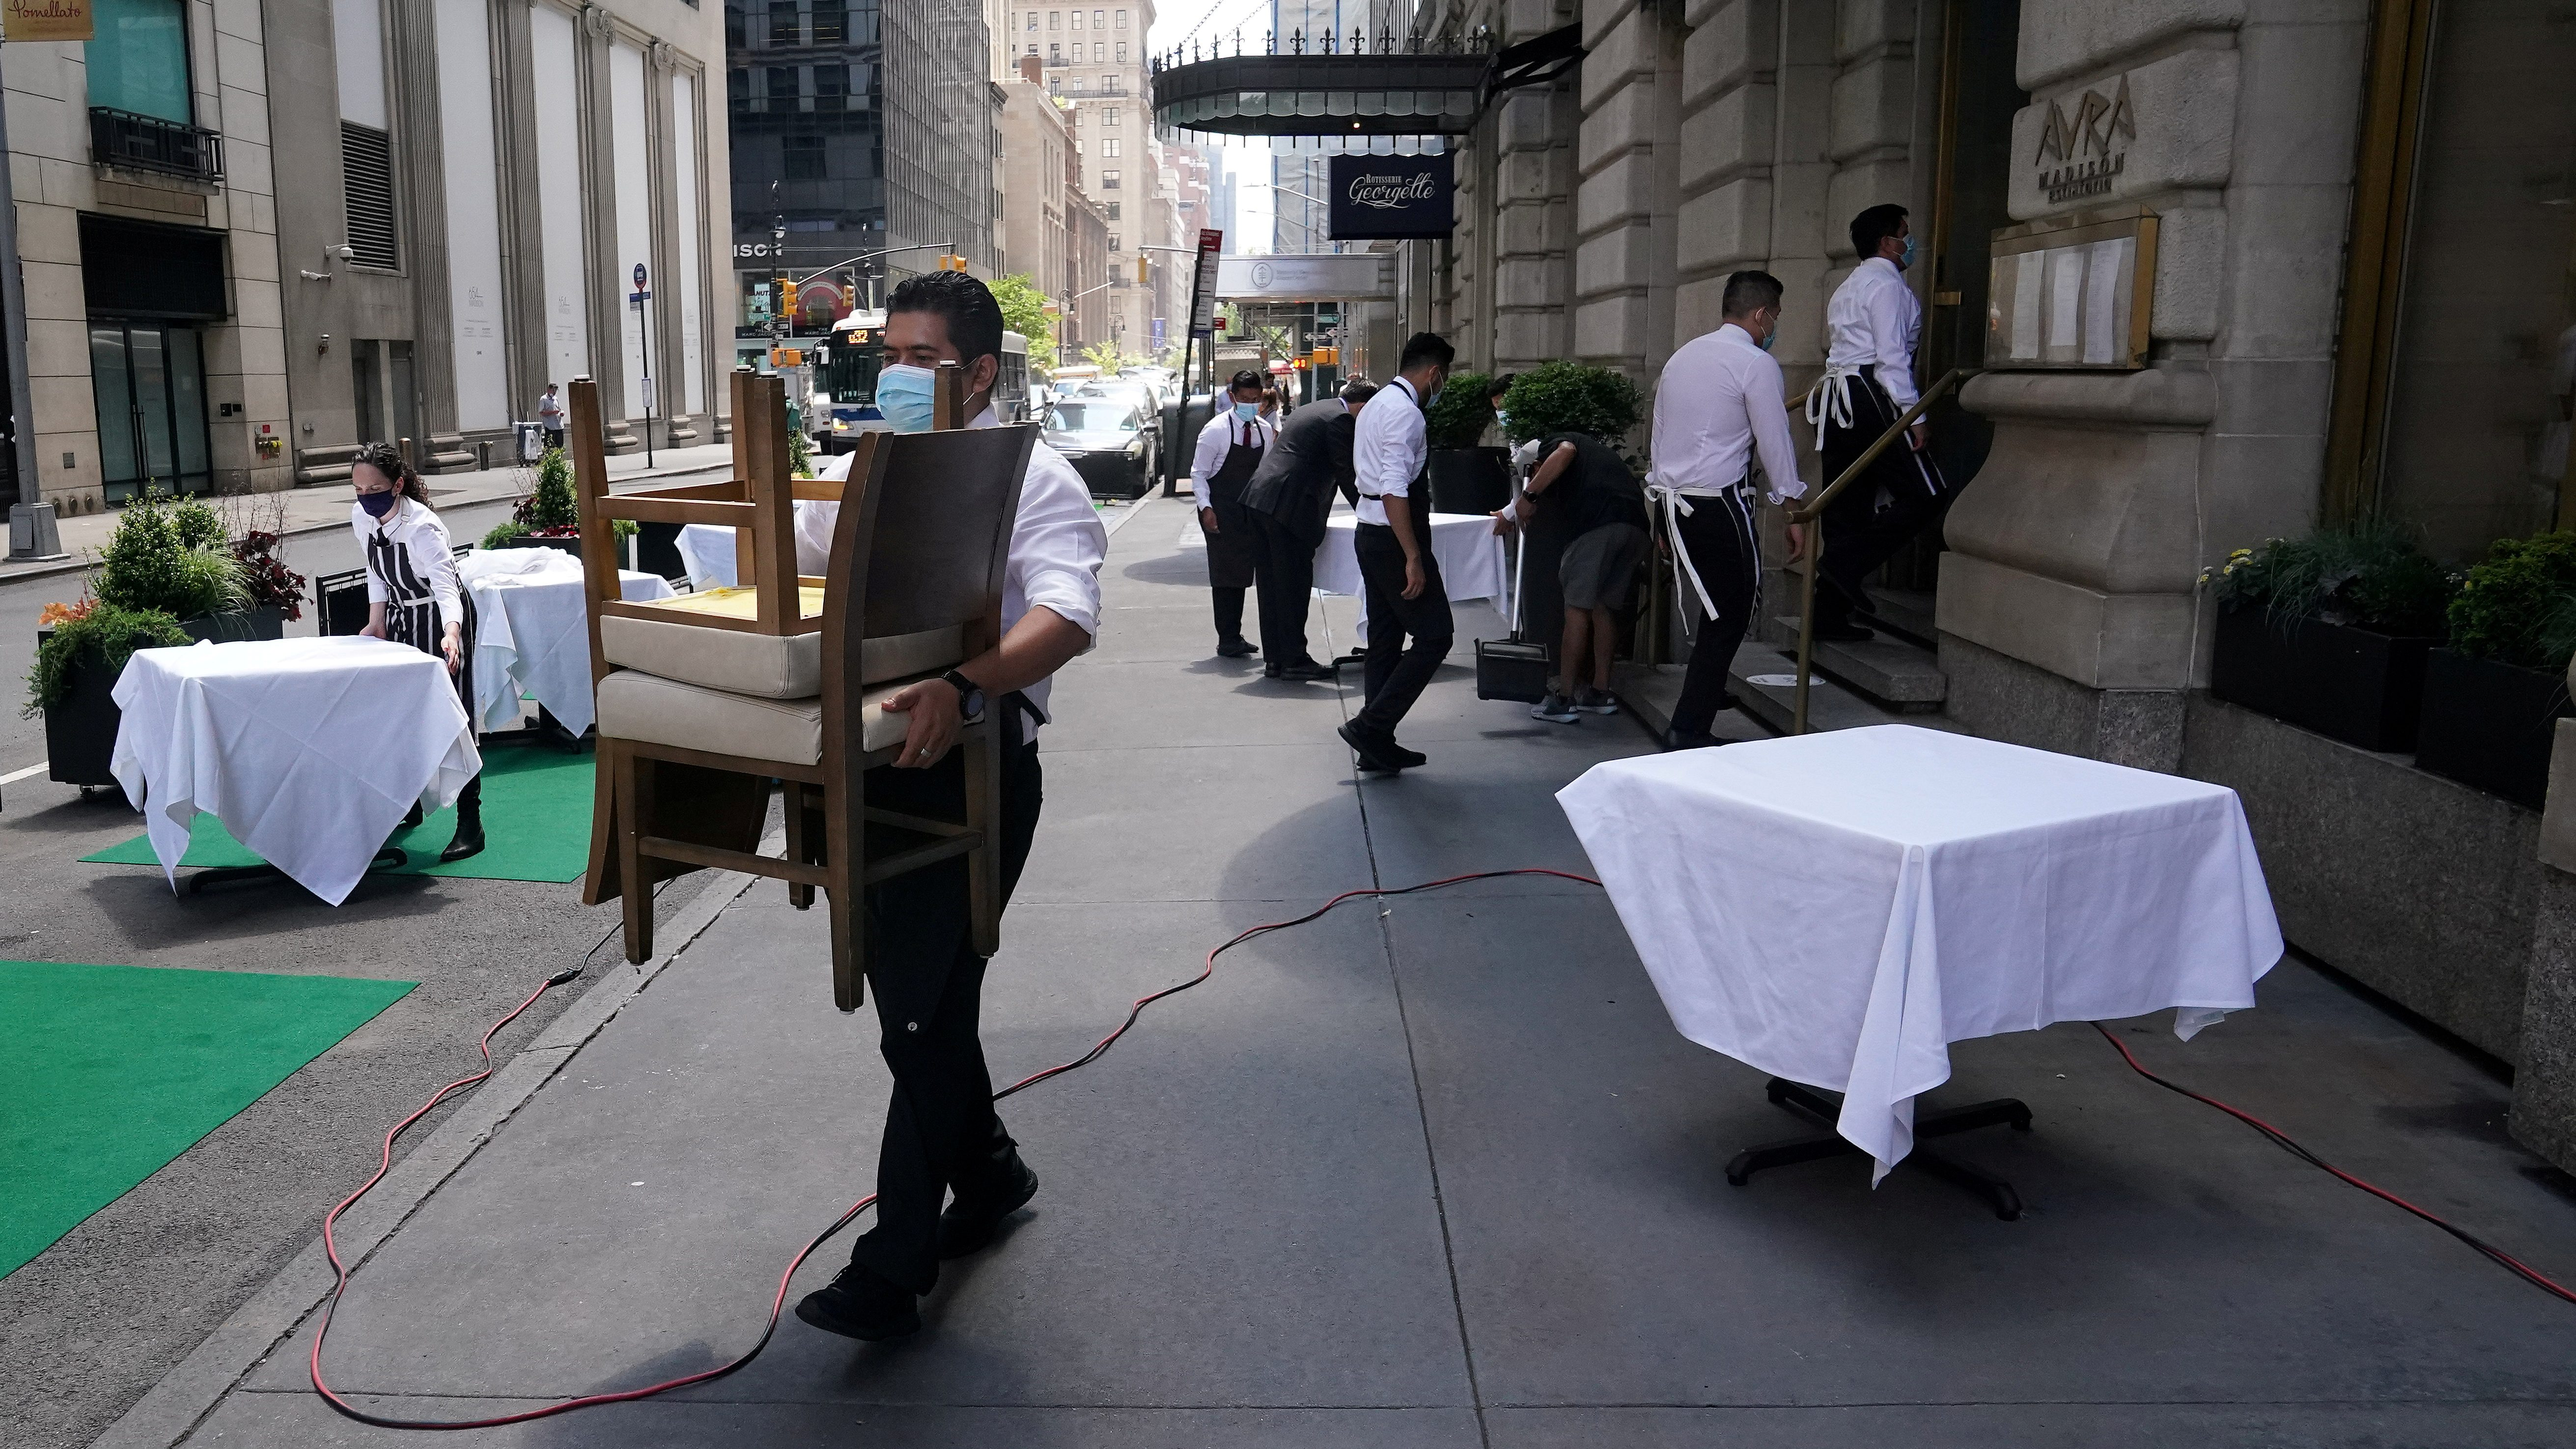 A waiter sets up tables in front of a restaurant in New York City.